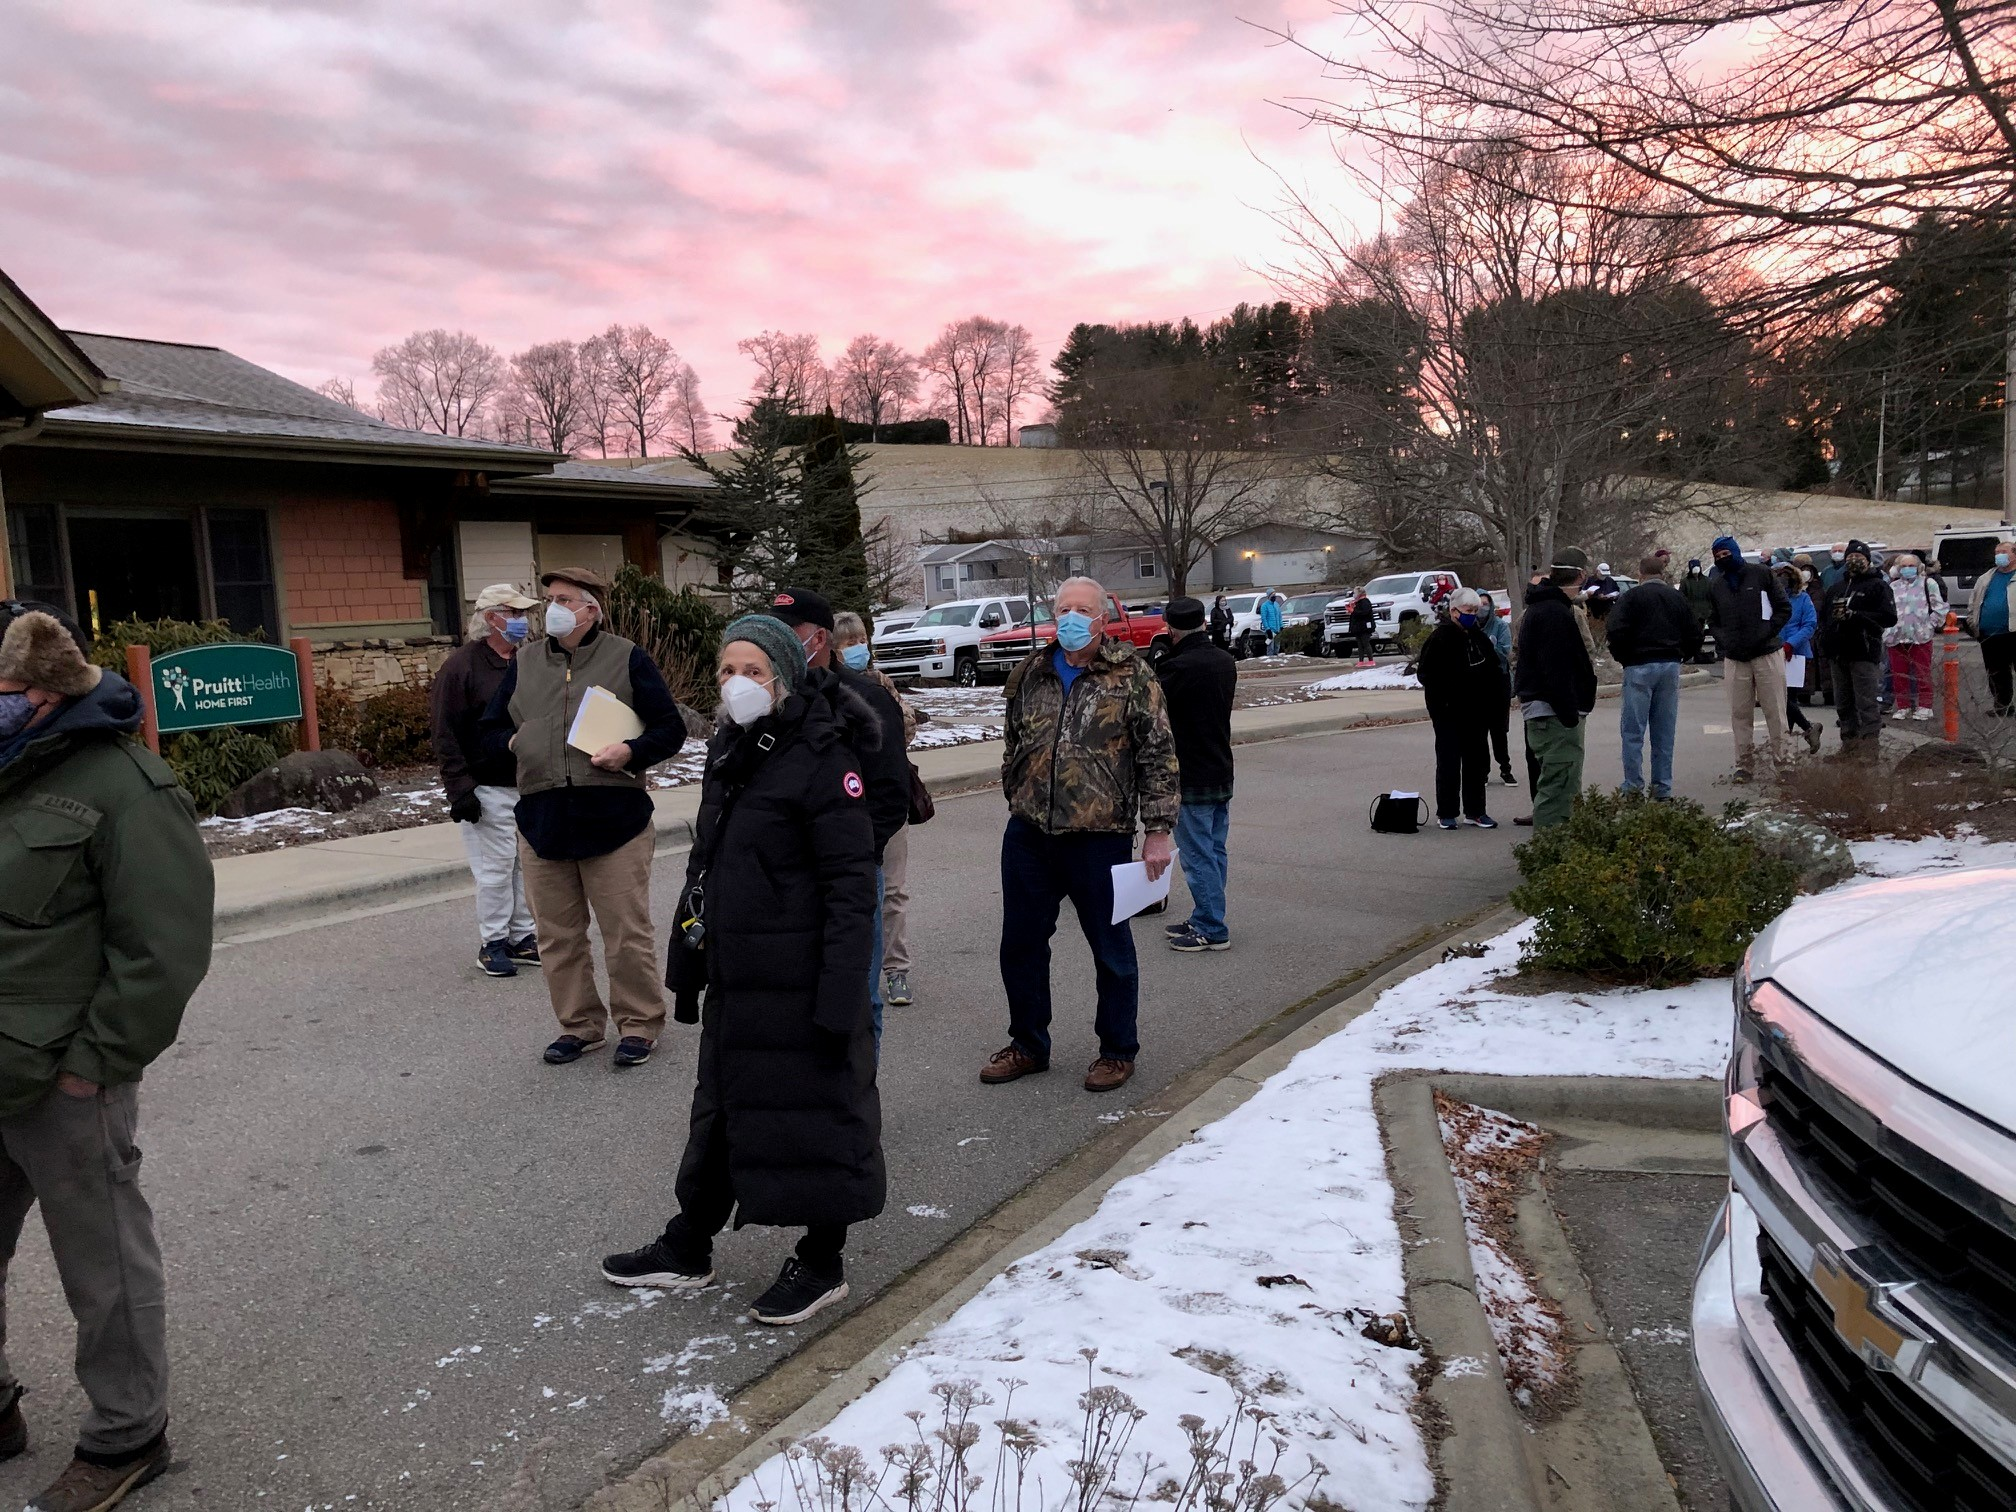 JANUARY 19, 2021 - Long lines for the COVID-19 vaccine outside the Yancey County Health Department (Photo credit: Sarah Blanchard)